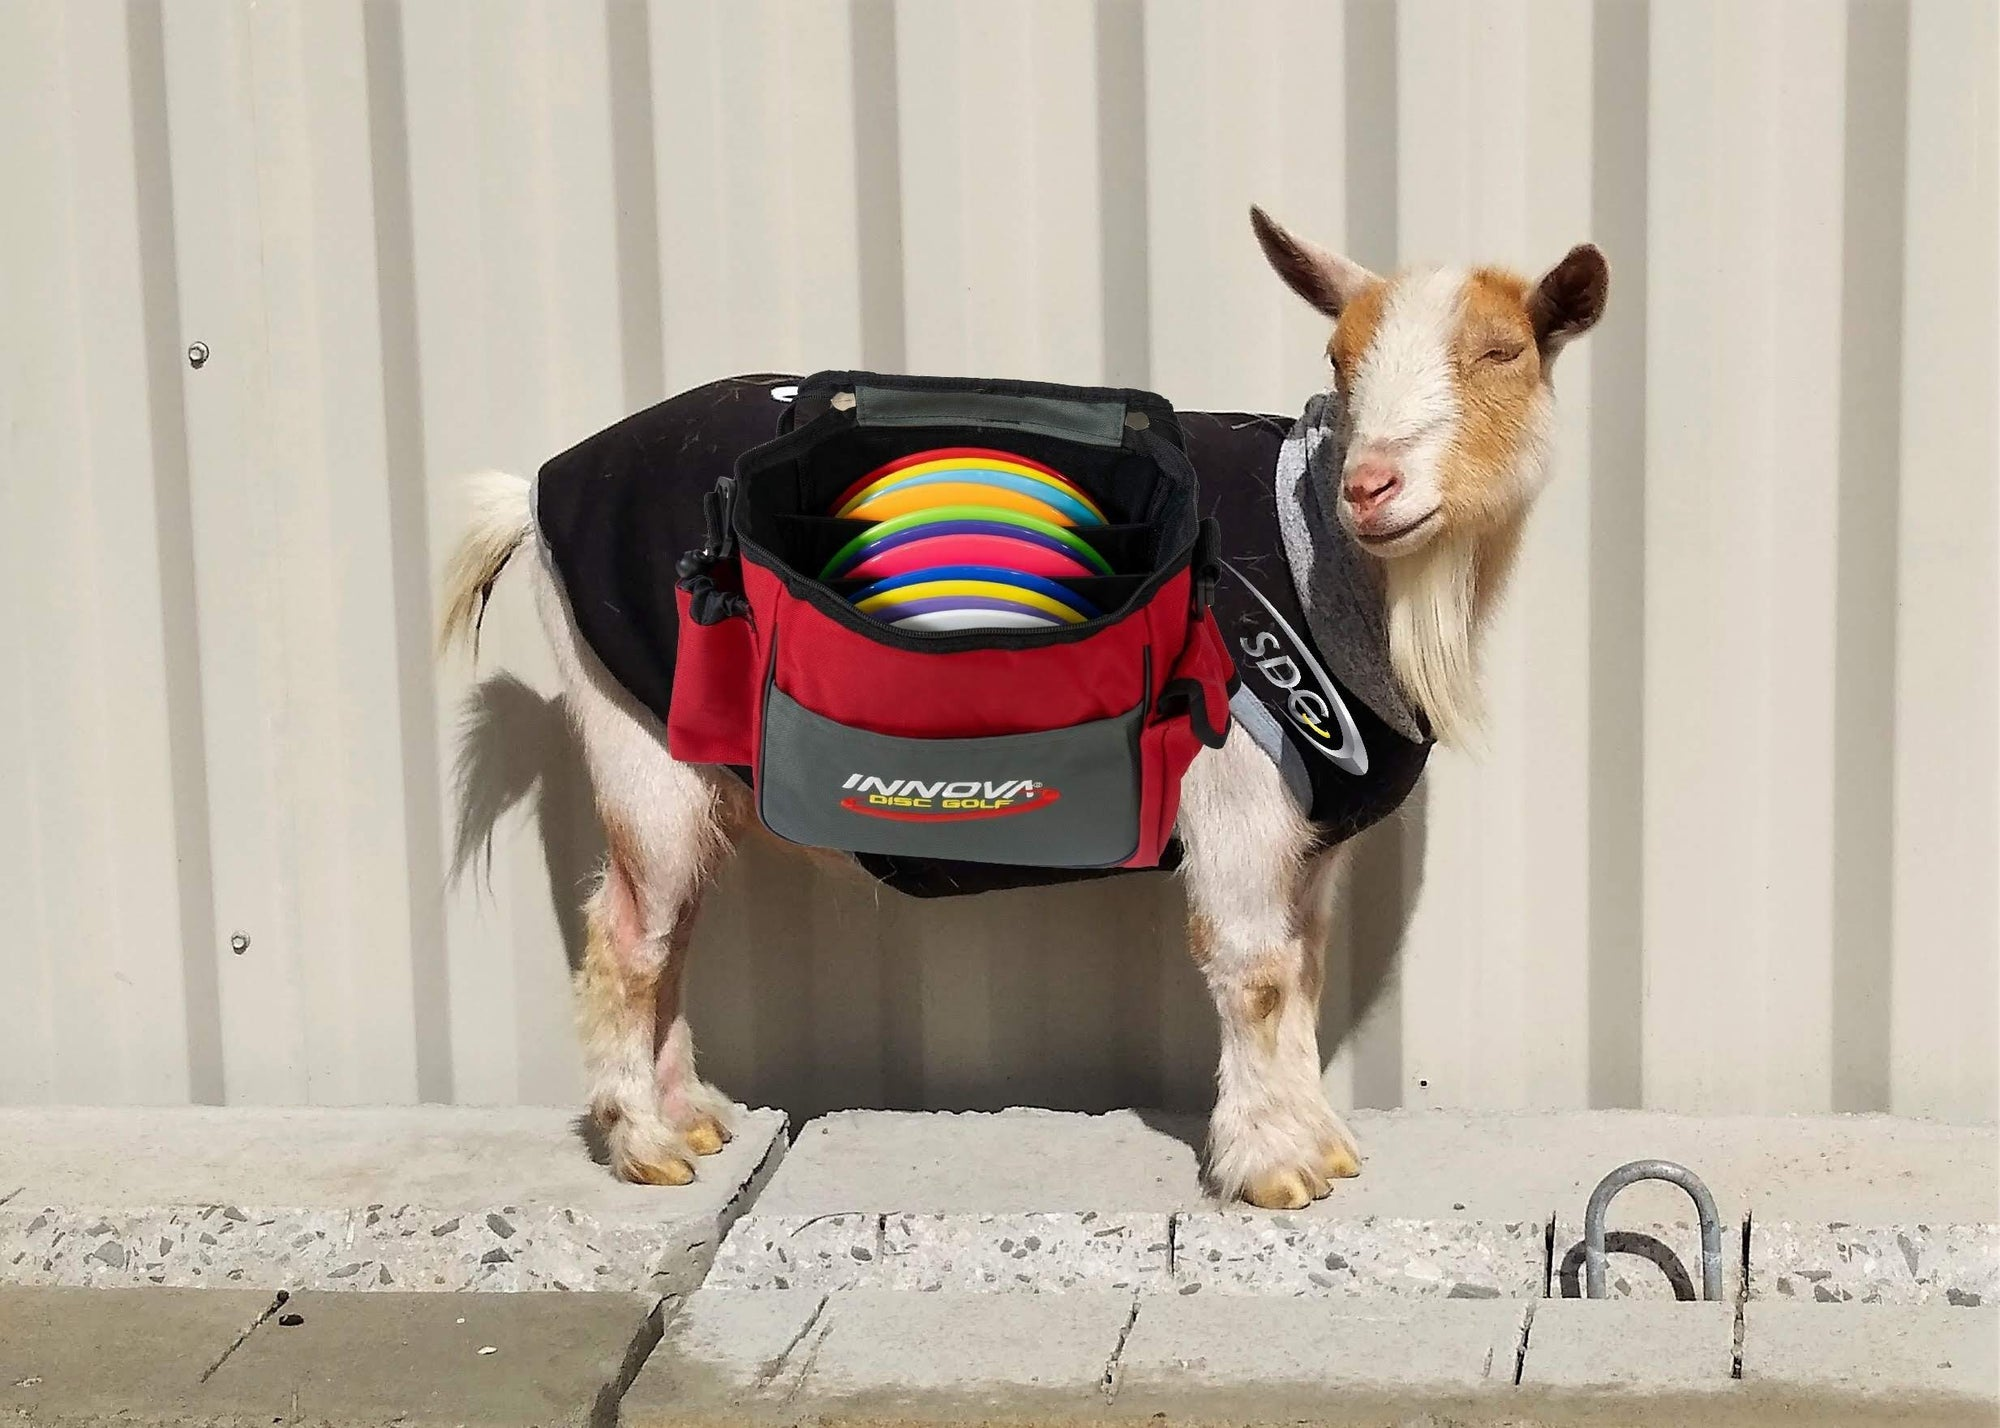 Birdie the goat caddying at sabattus disc golf